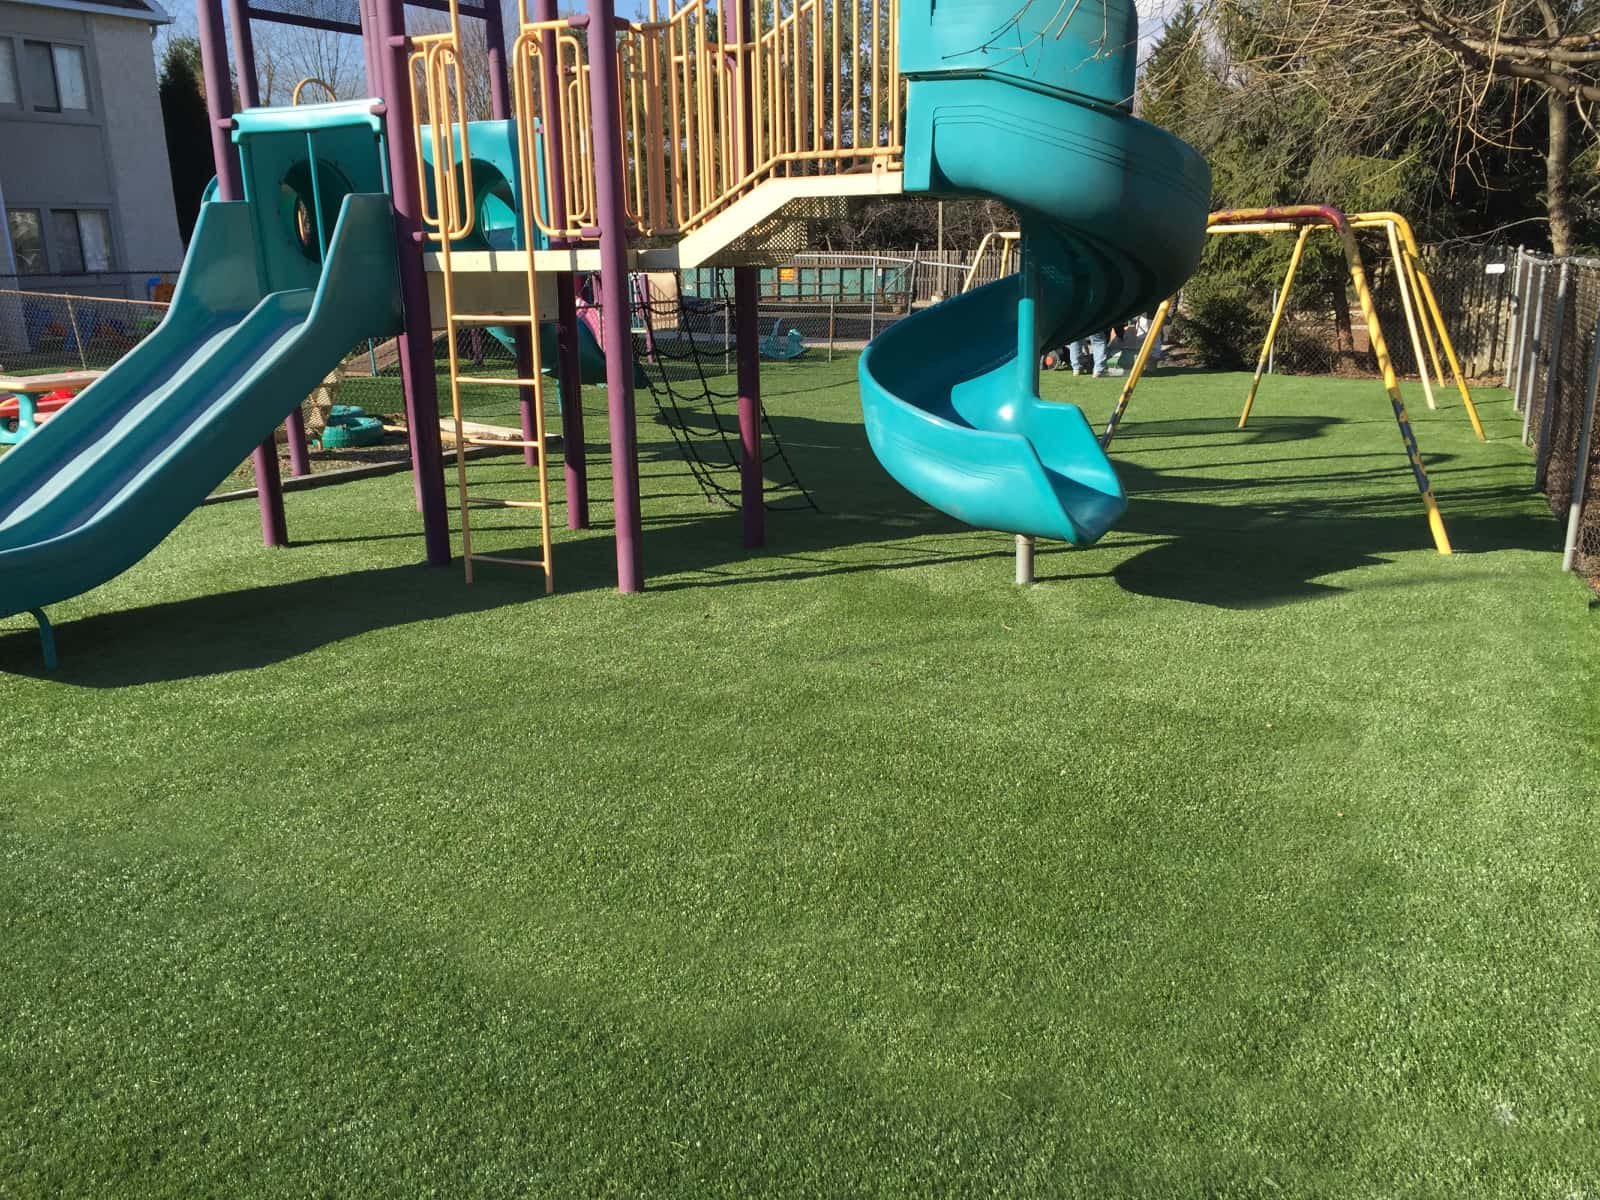 Playground with artificial grass padded ground